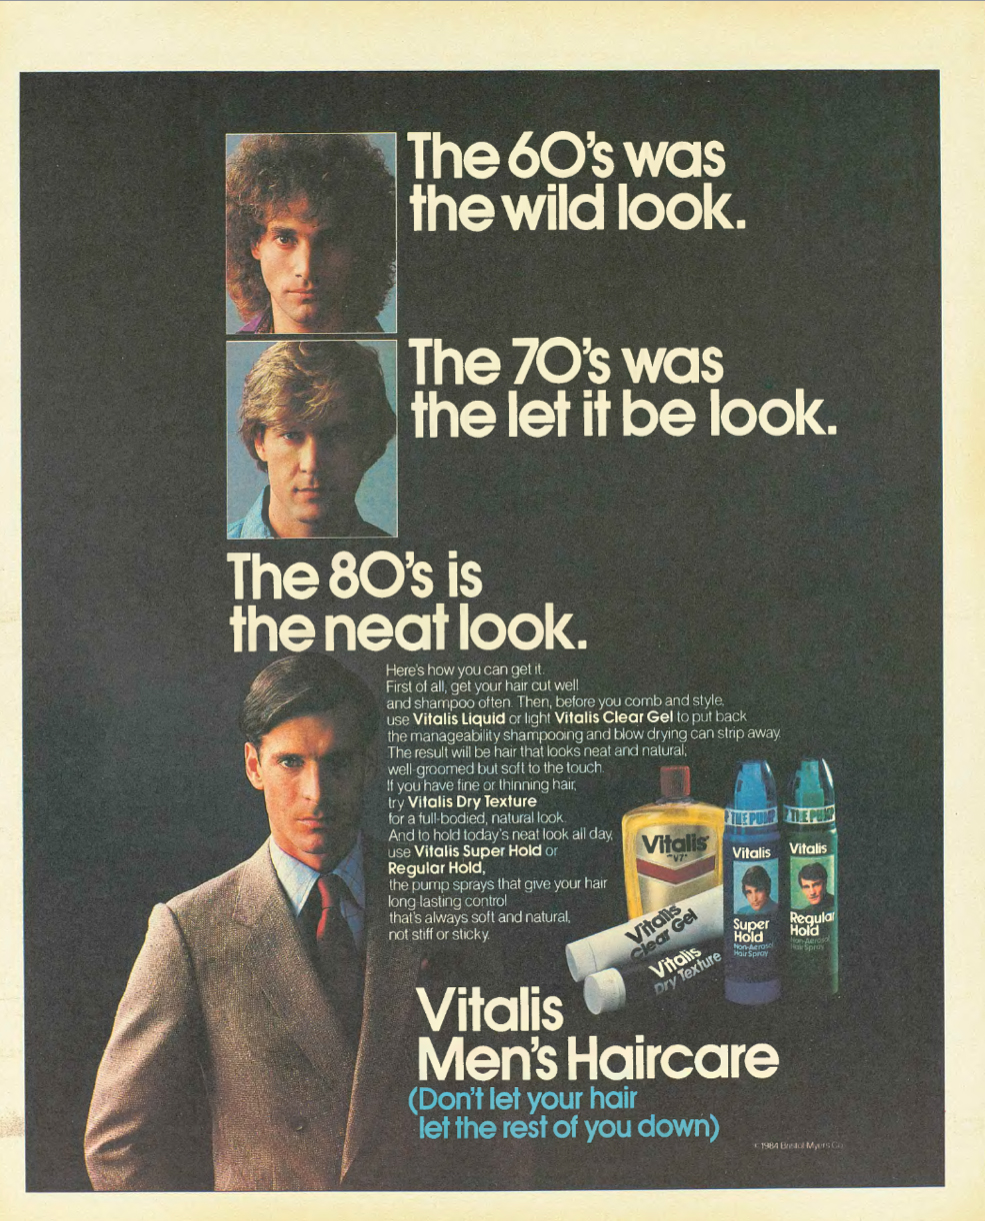 The style of the early 80s was quickly being defined by the yuppie look (1983).